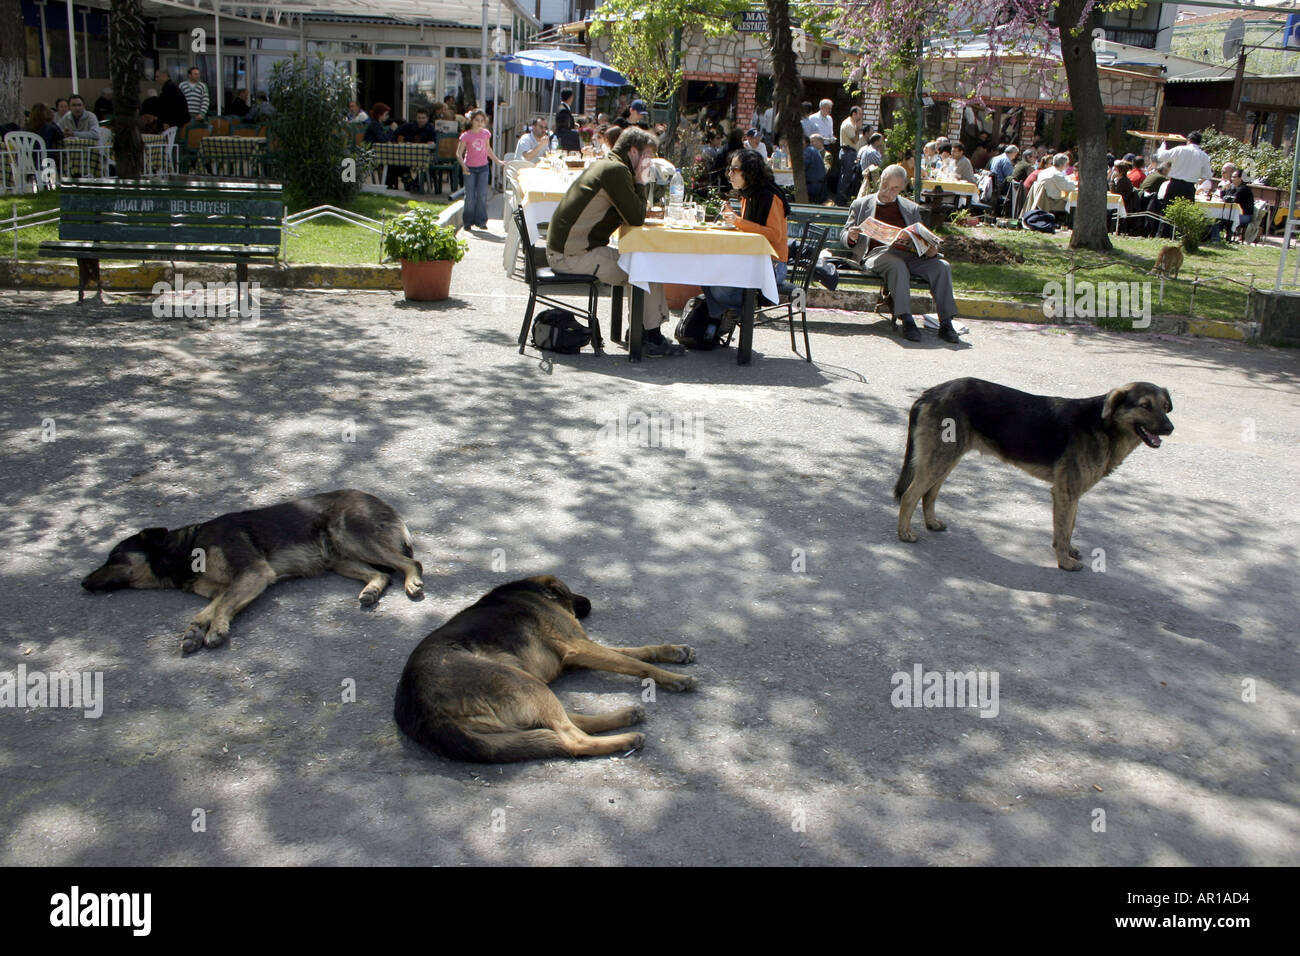 stray dogs in the park - Stock Image